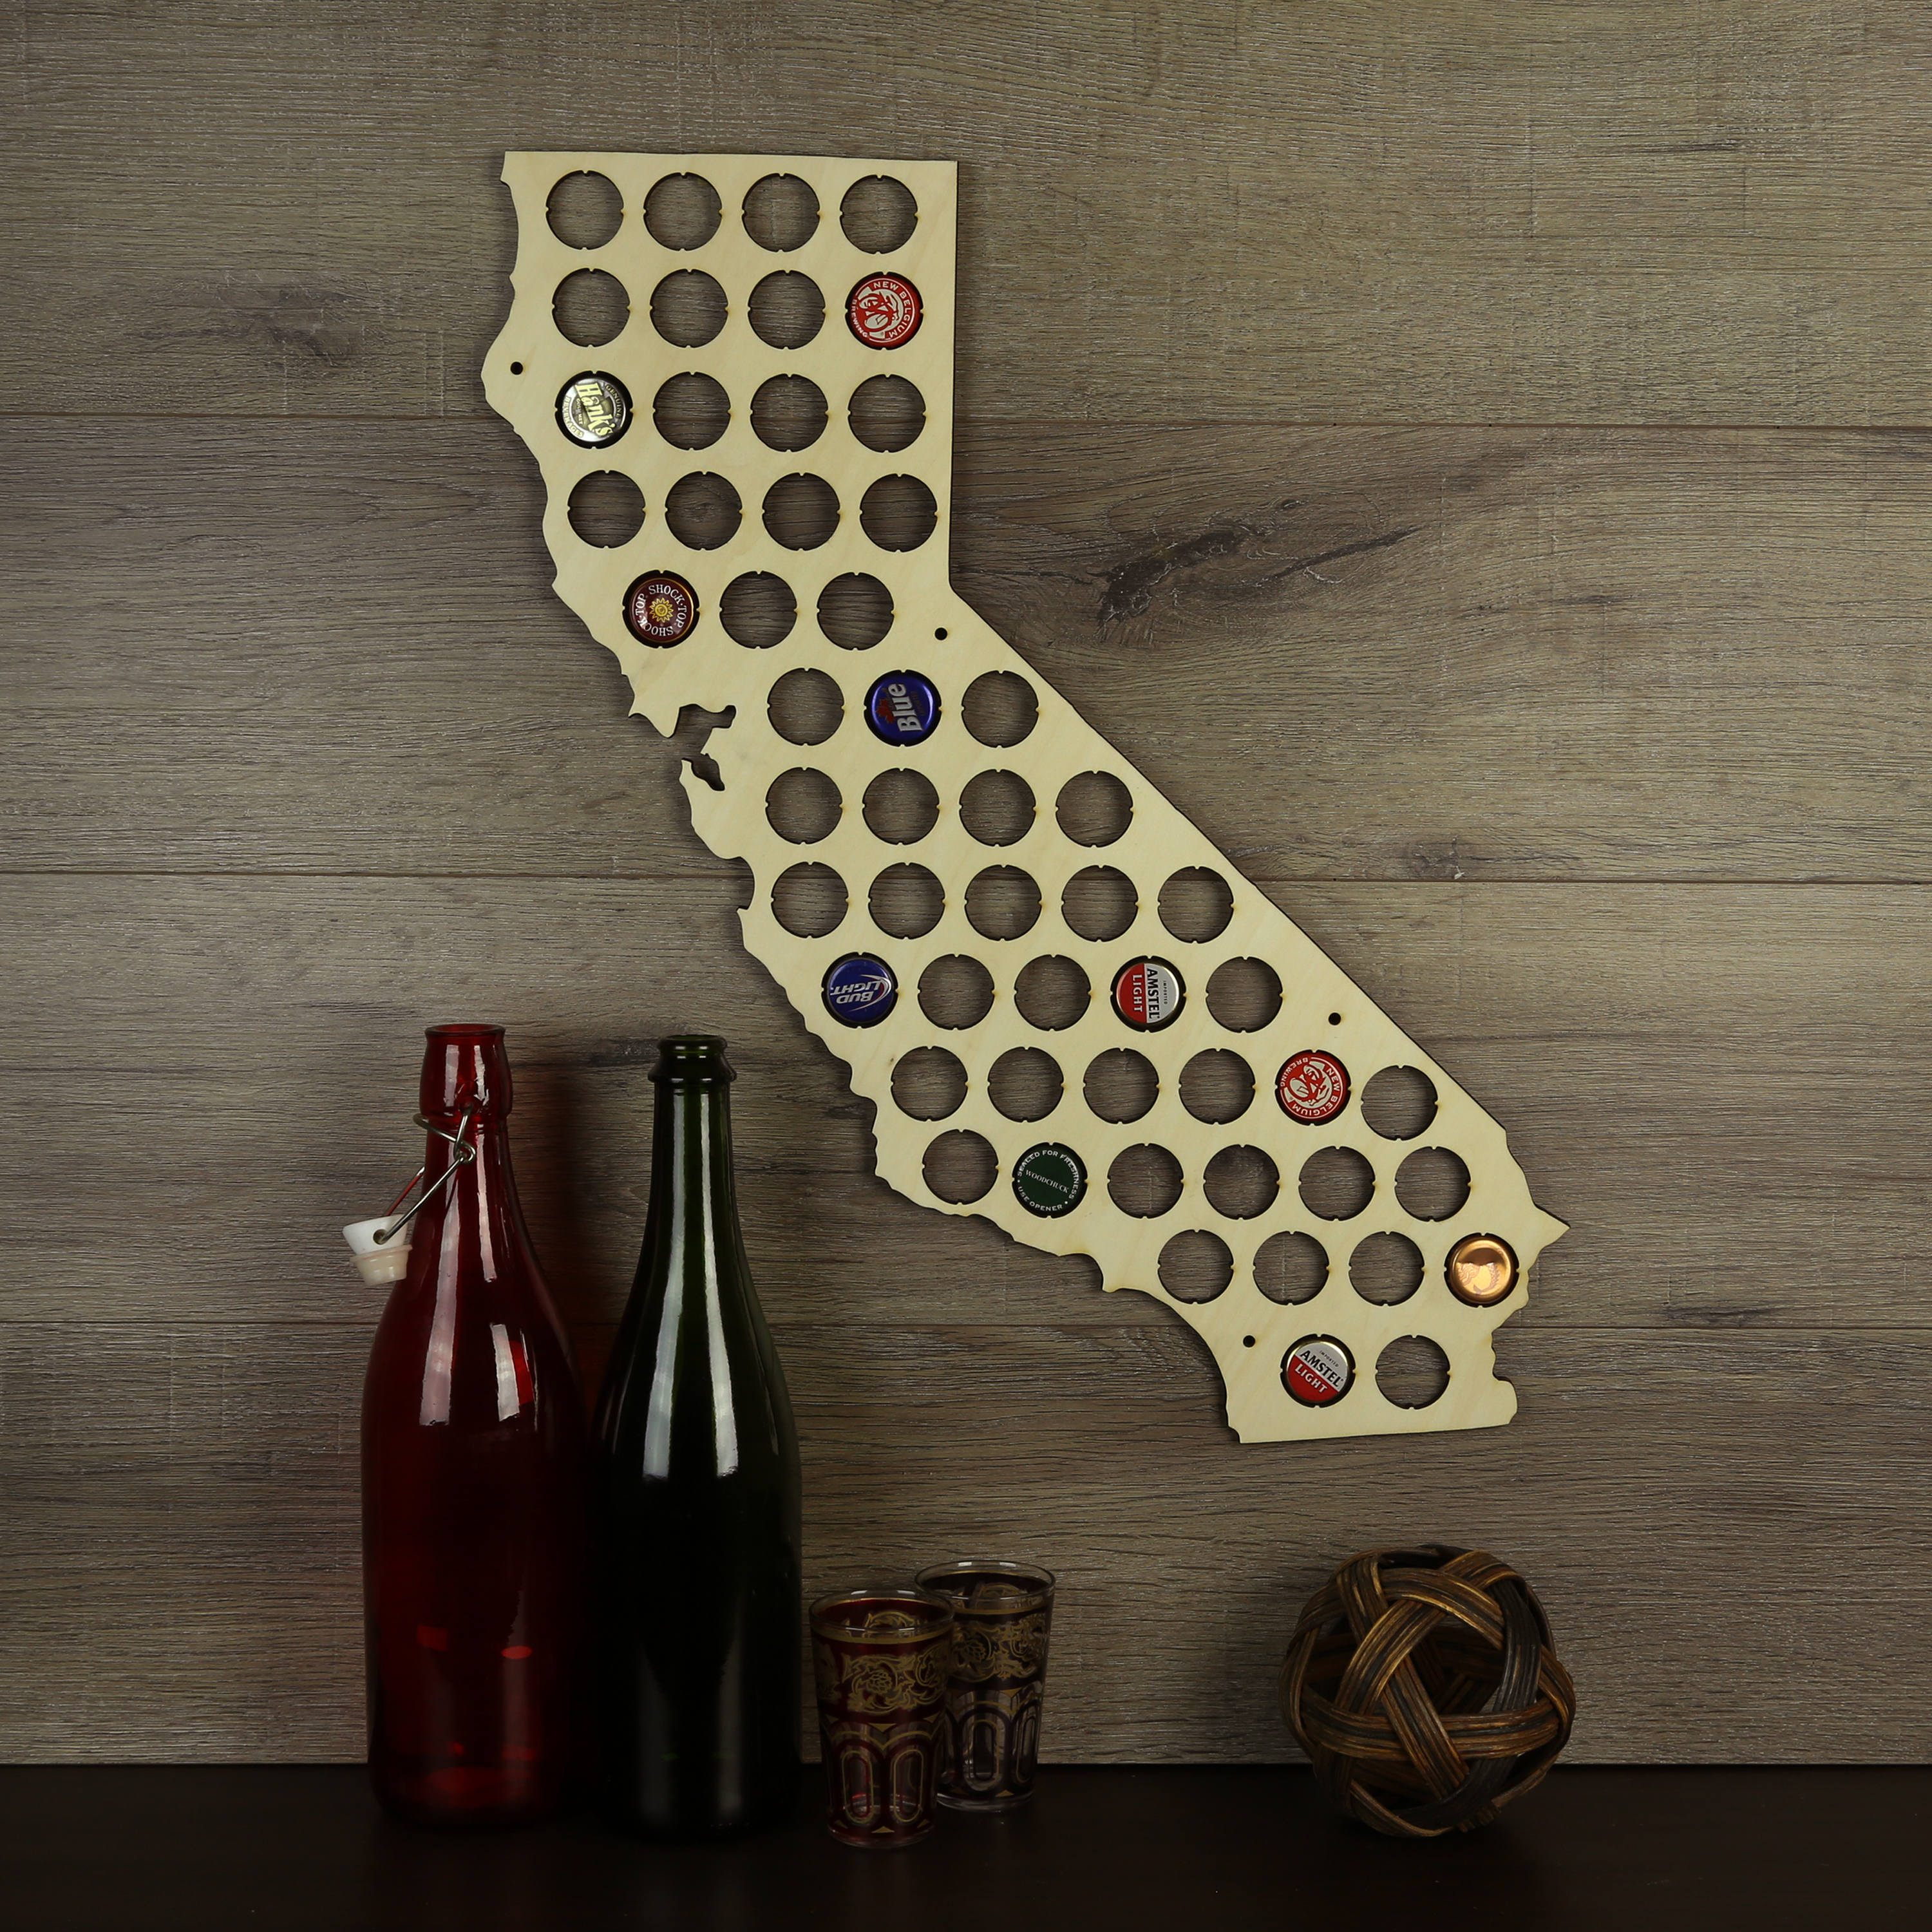 California Beer Cap Map Beer Cap Holder Cap Map Cap Maps | Etsy - California Beer Cap Map